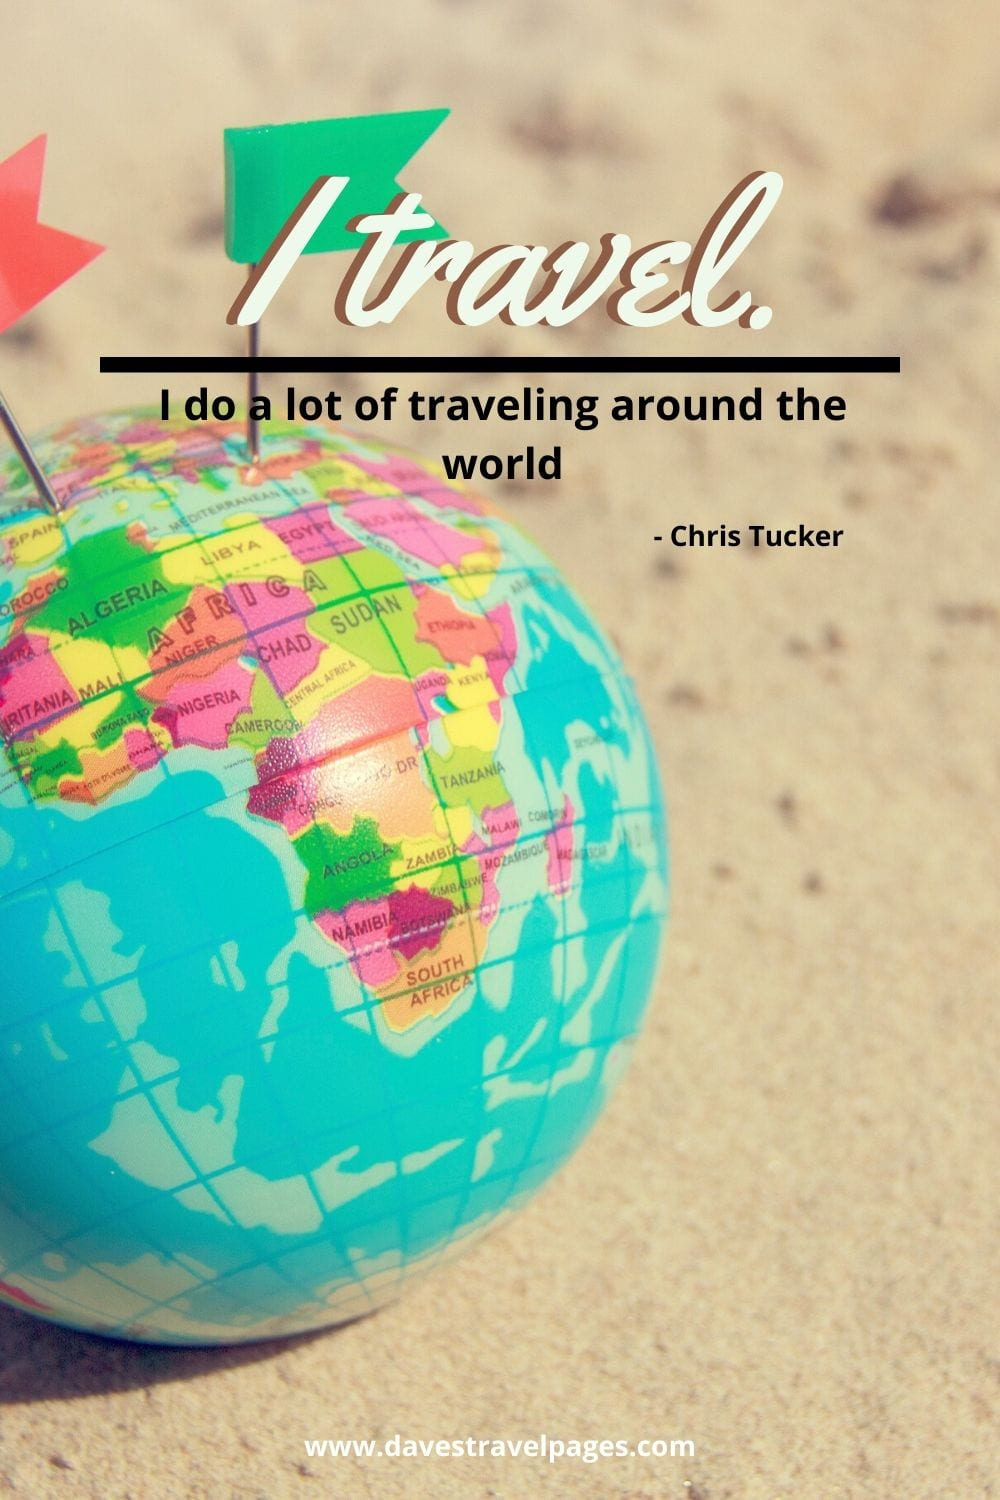 I travel. I do a lot of traveling around the world. Chris Tucker